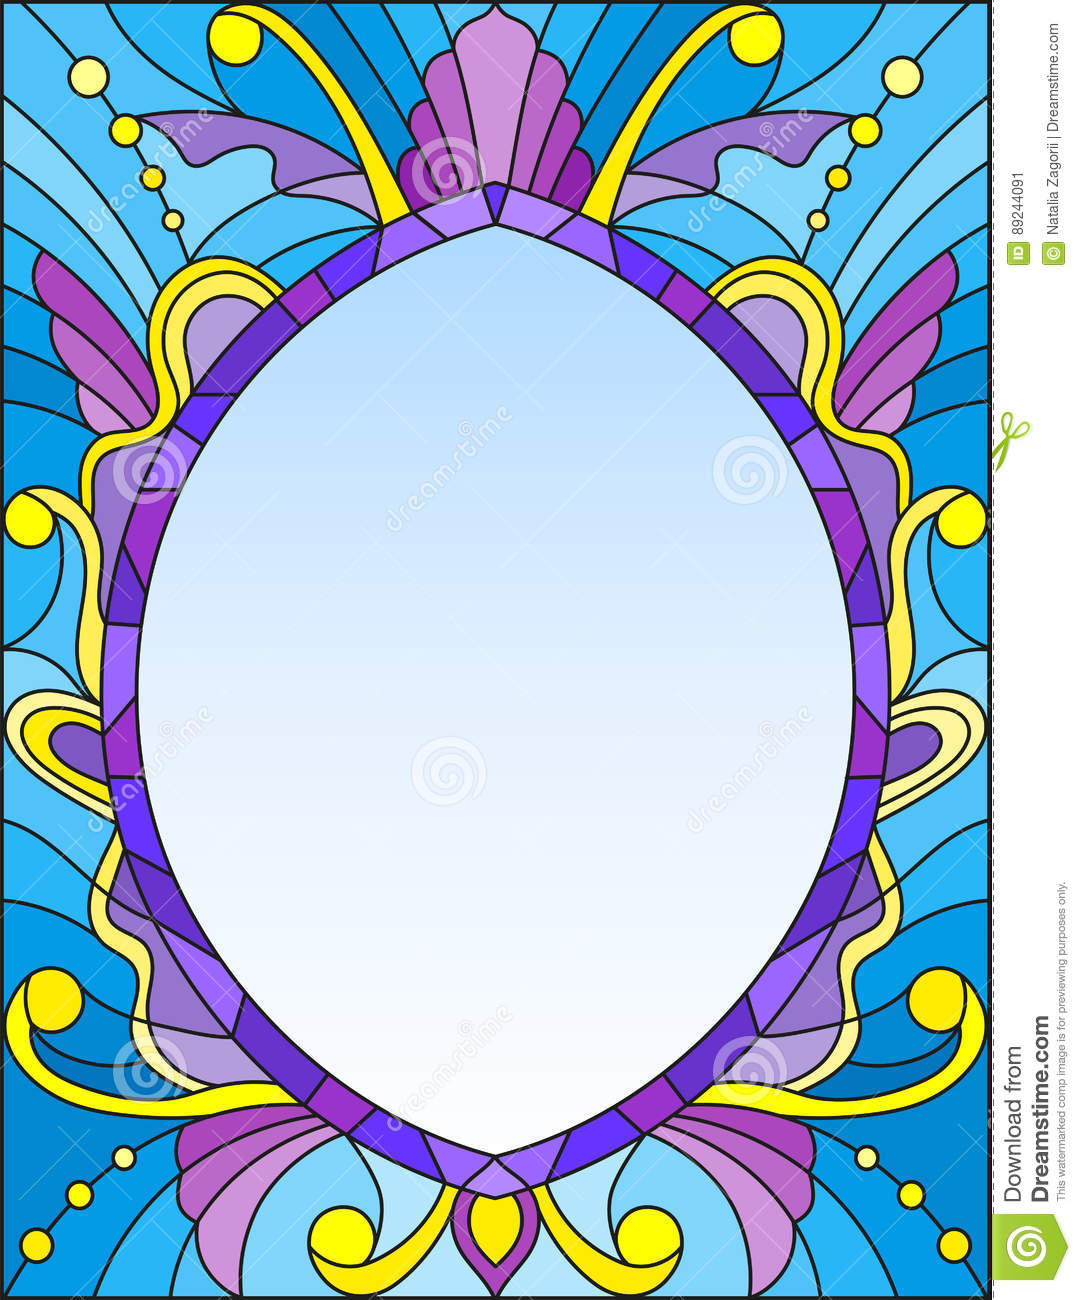 Stained Glass Illustration Frame With Abstract Patterns And Swirls